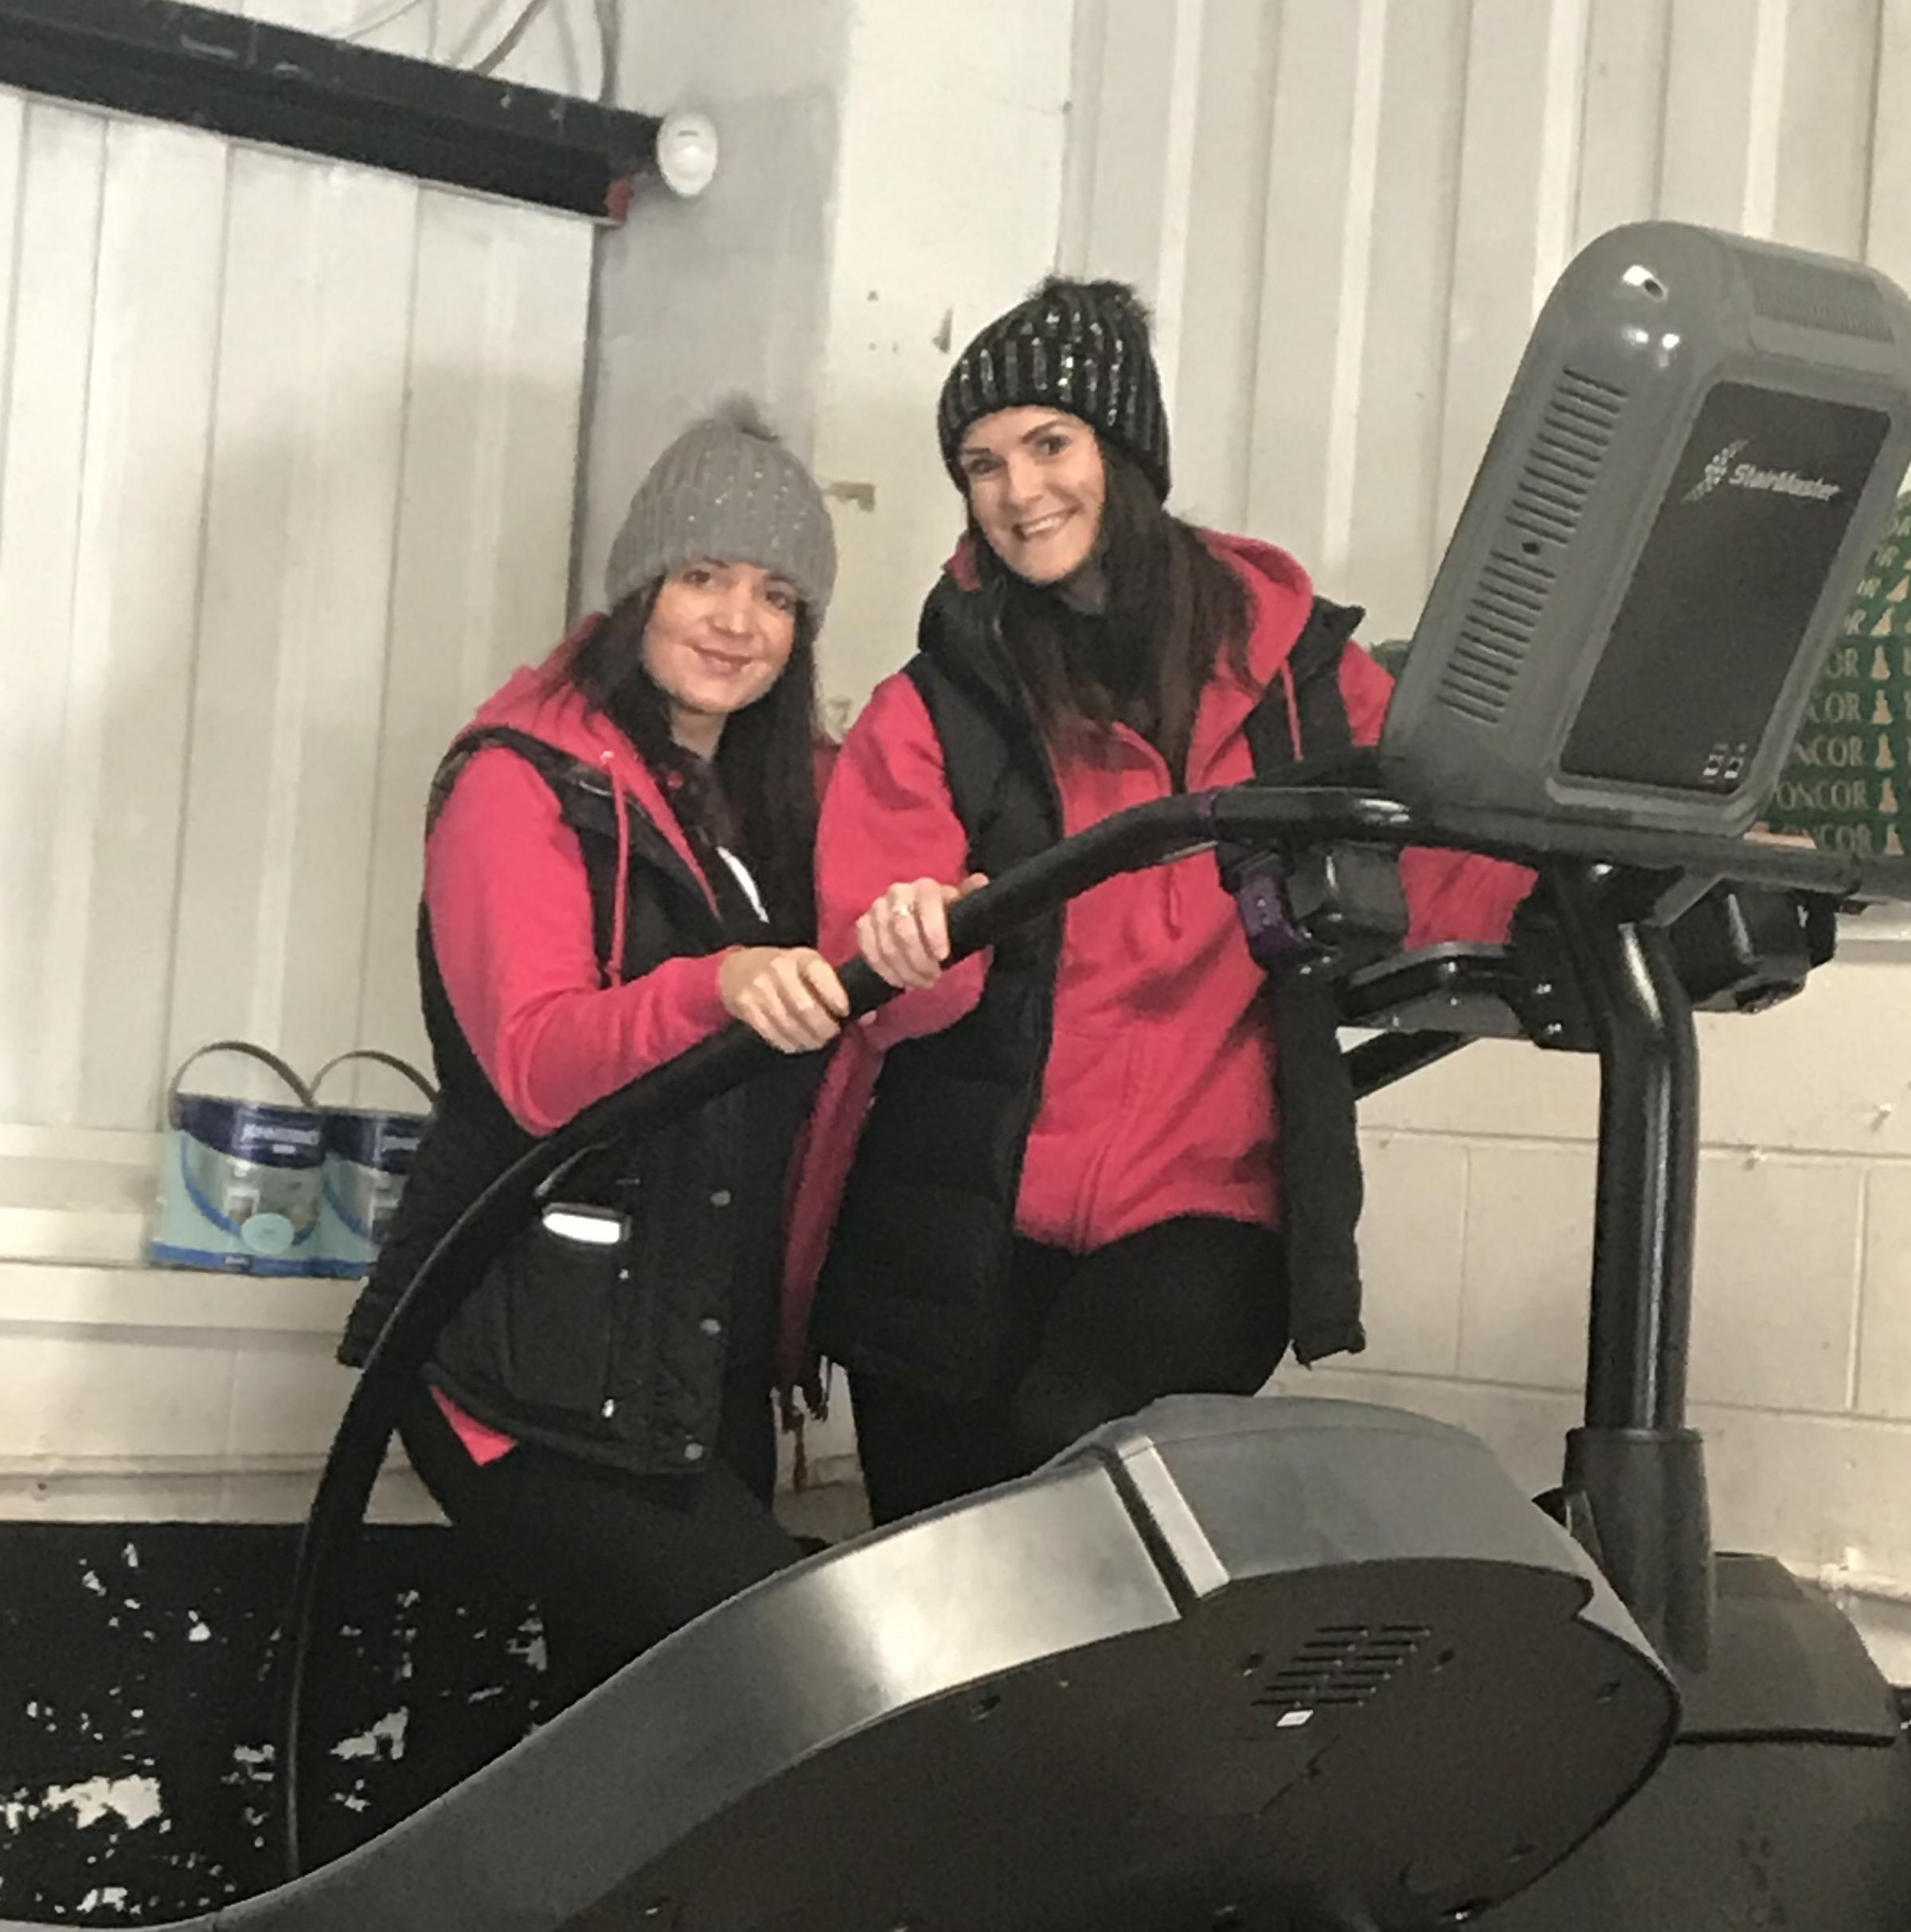 Sarah Cayton and Michelle Hunt step up their training